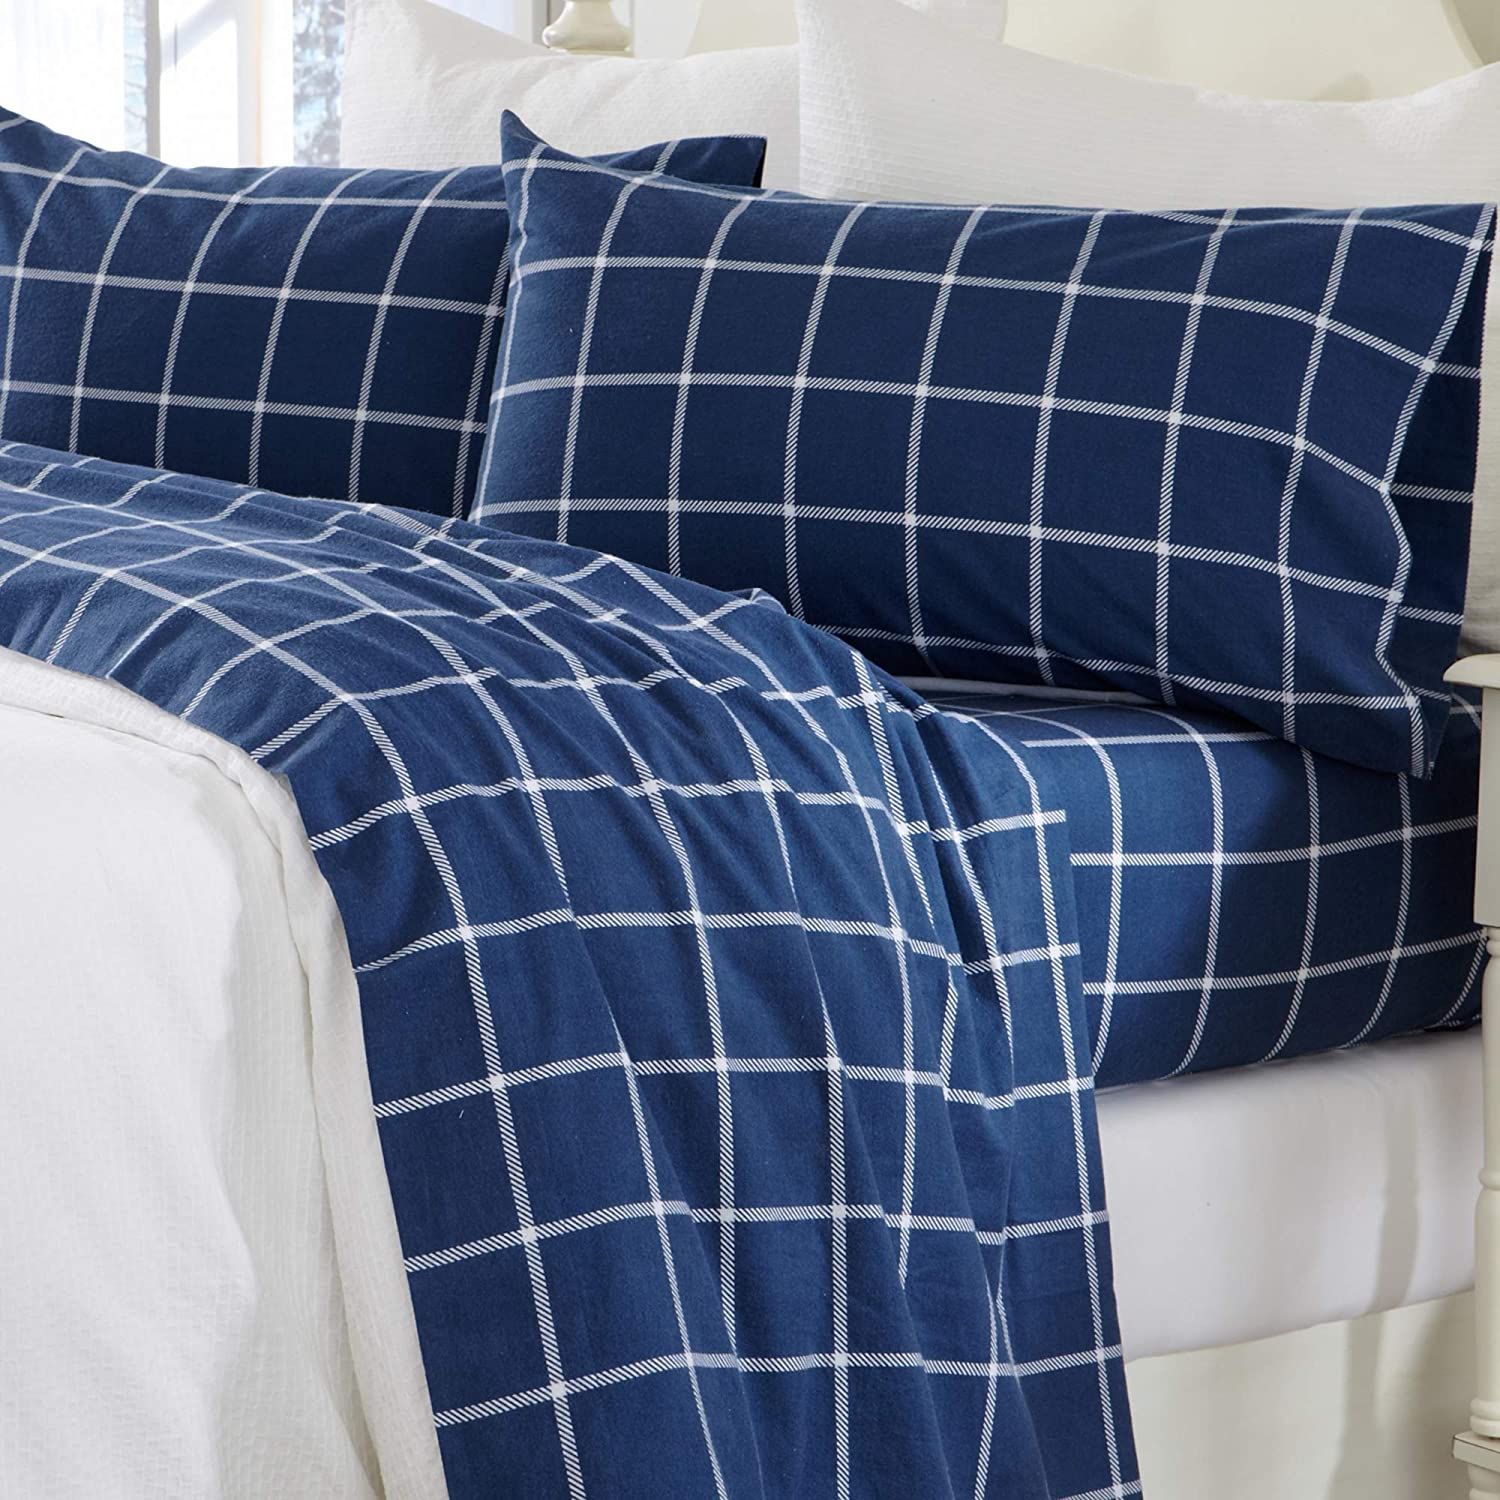 Great Bay Home 4 Piece Extra Soft Windowpane 100% Turkish Cotton Flannel Sheet Set. Heavyweight, Warm, Cozy, Luxury Winter Deep Pocket Bed Sheets. Belle Collection (Queen, Navy/White)